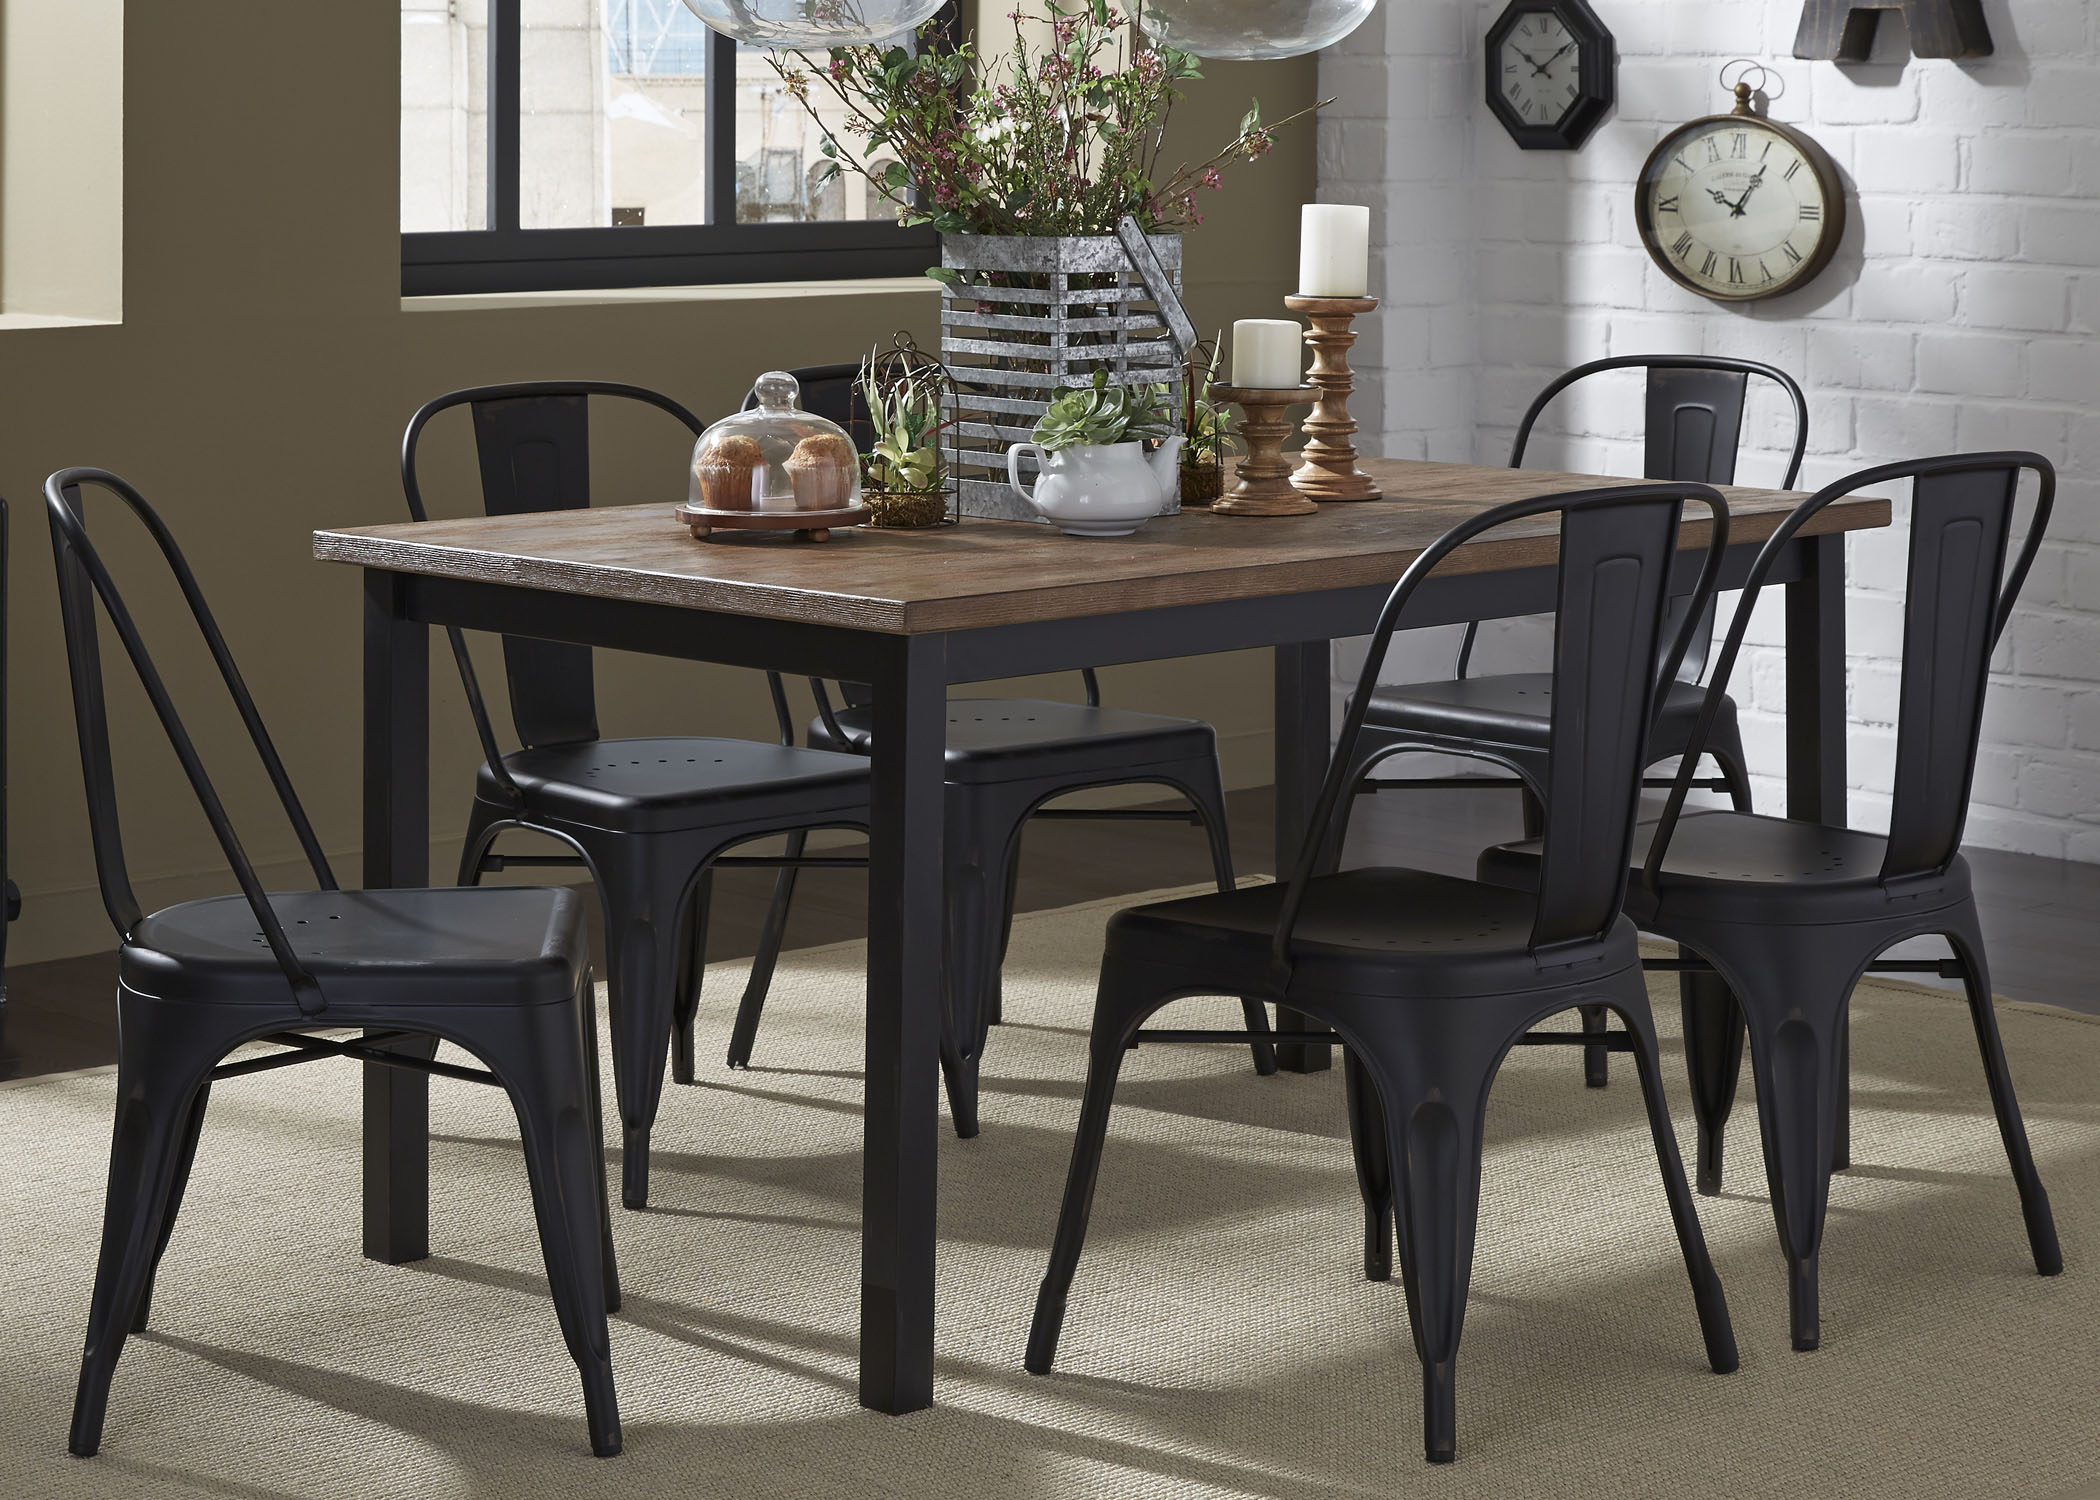 Vintage Dining Series 7-Piece Table and Chair Set by Freedom Furniture at Ruby Gordon Home